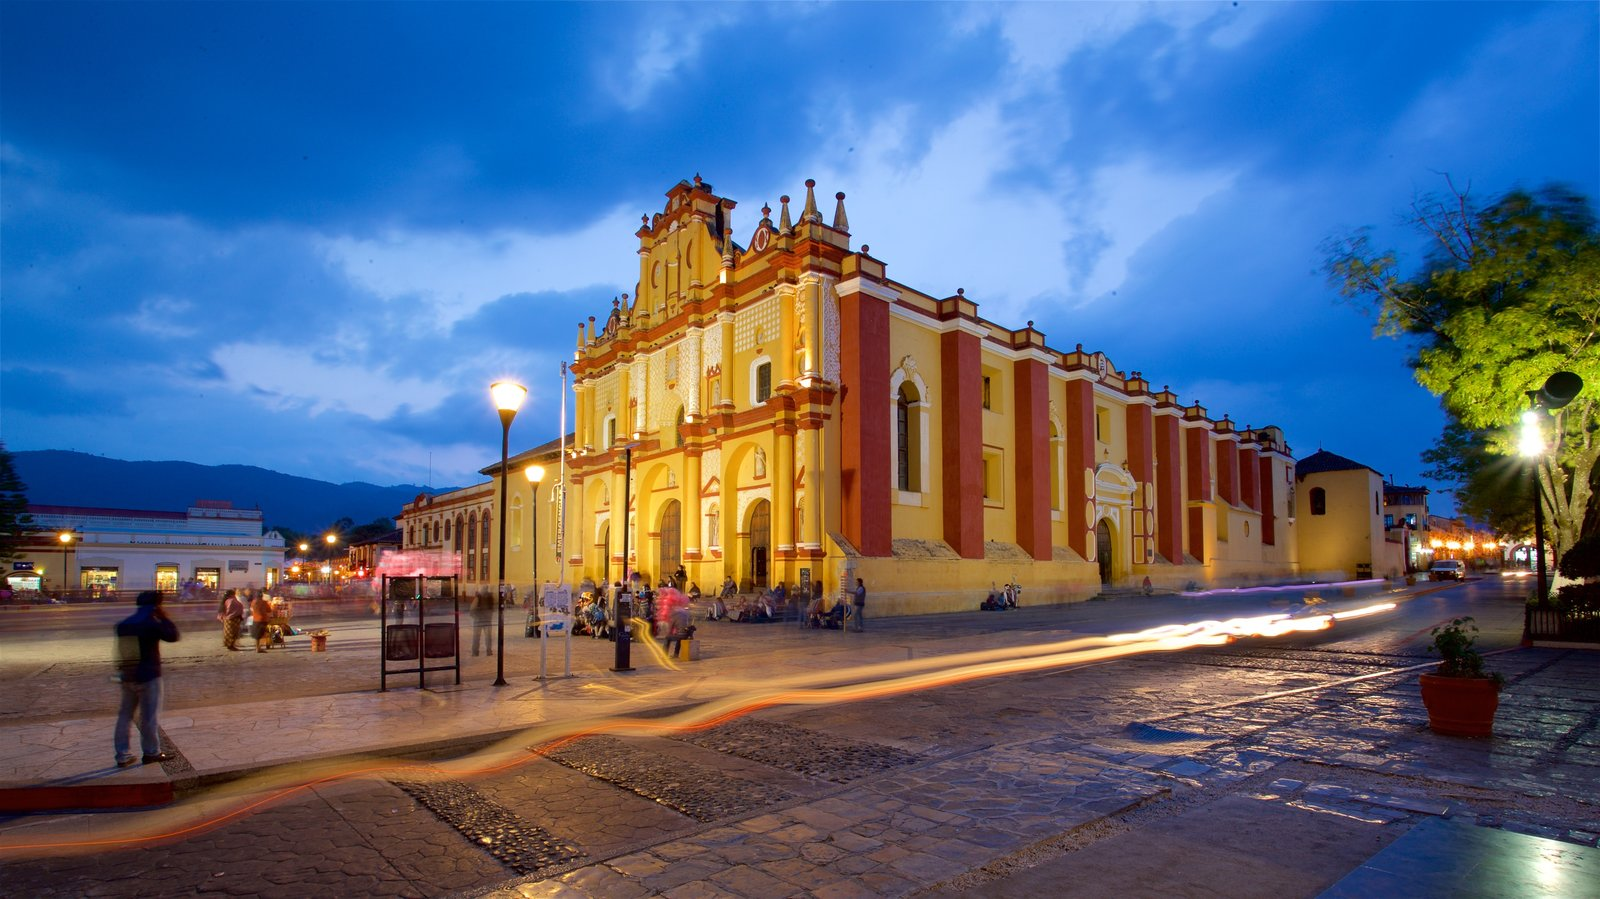 san cristobal de las casas girls B¨o is a luxury boutique hotel whose roots are born in the heart of san cristobal de las casas chiapas, where stands to renew their traditions surrounded by stunning scenery, colonial streets and a world of art, textiles and culture to discover.